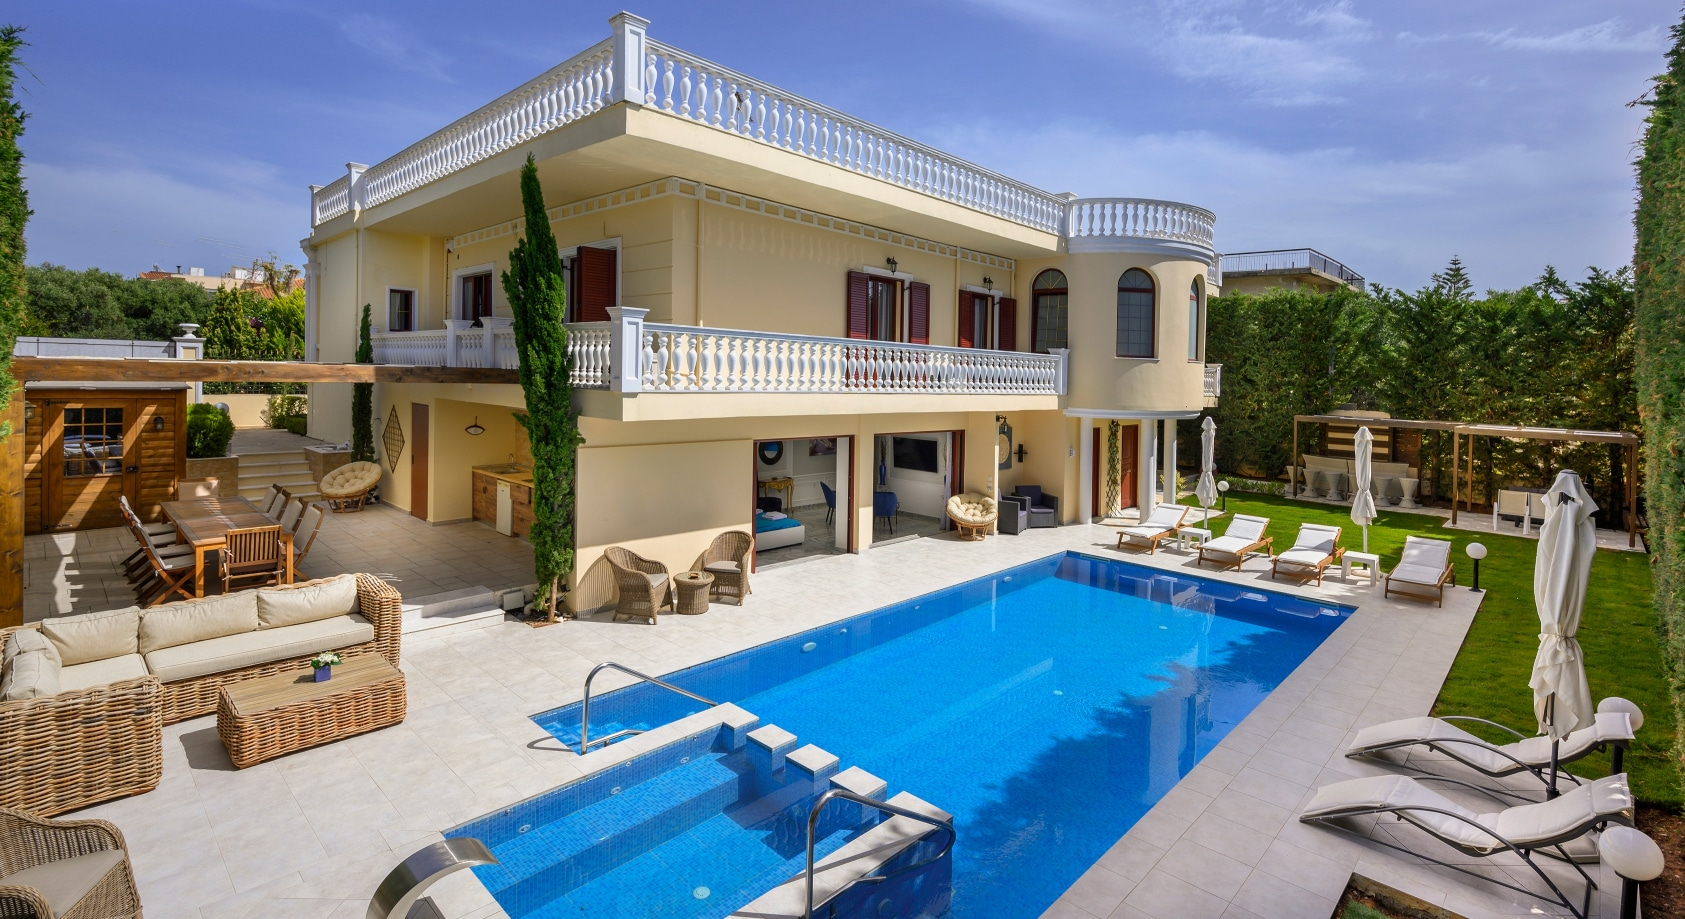 Property Image 1 - Luxury 6 bedroom villa with private pool